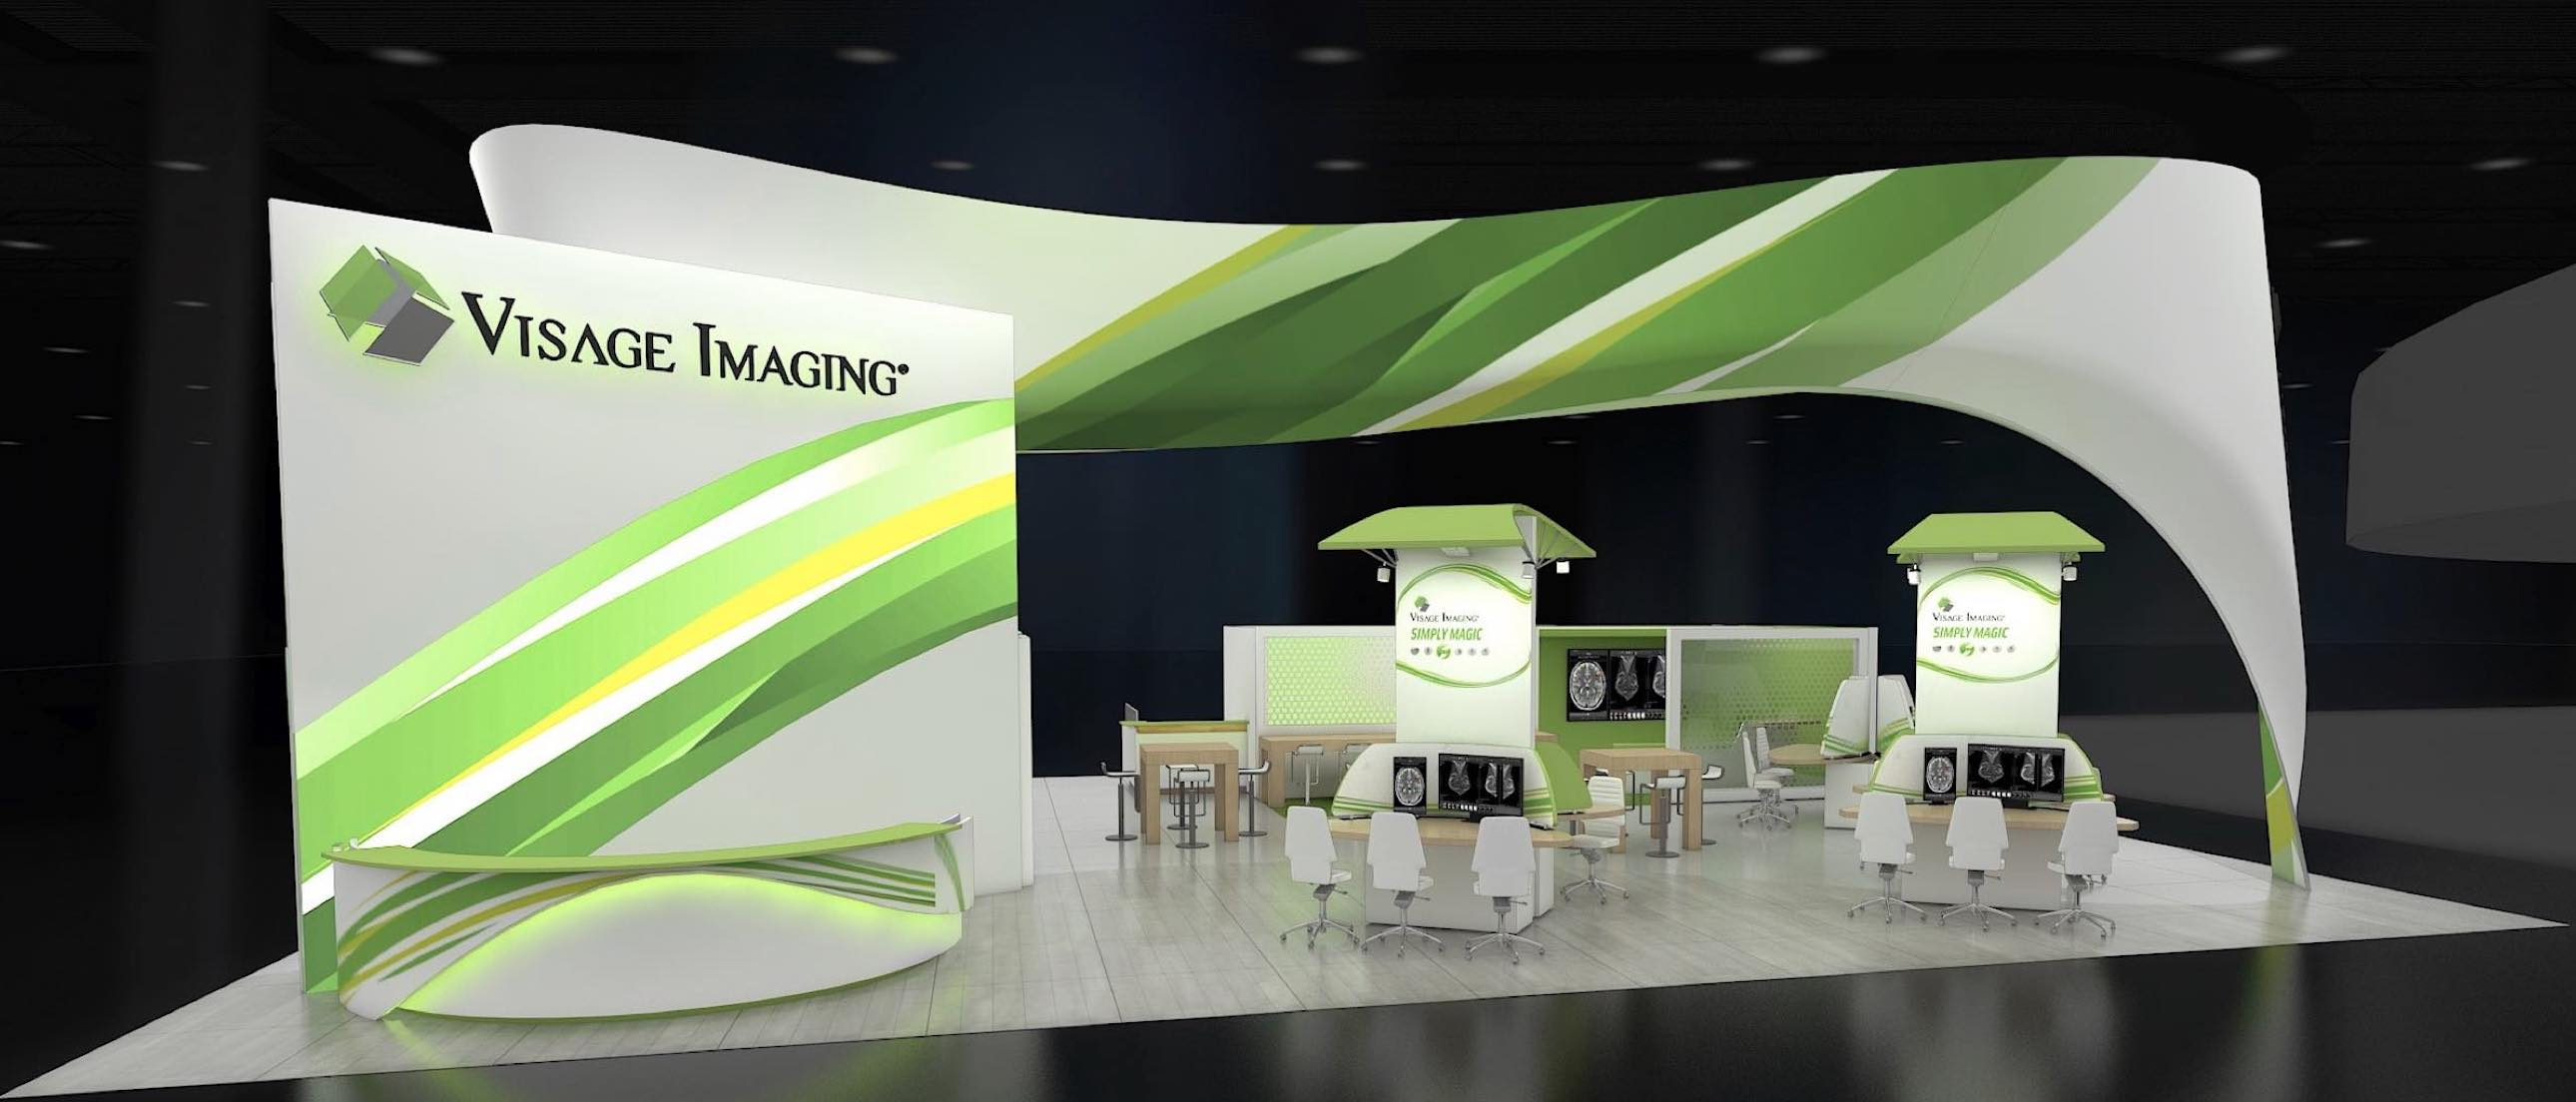 Visage Imaging at RSNA 2018